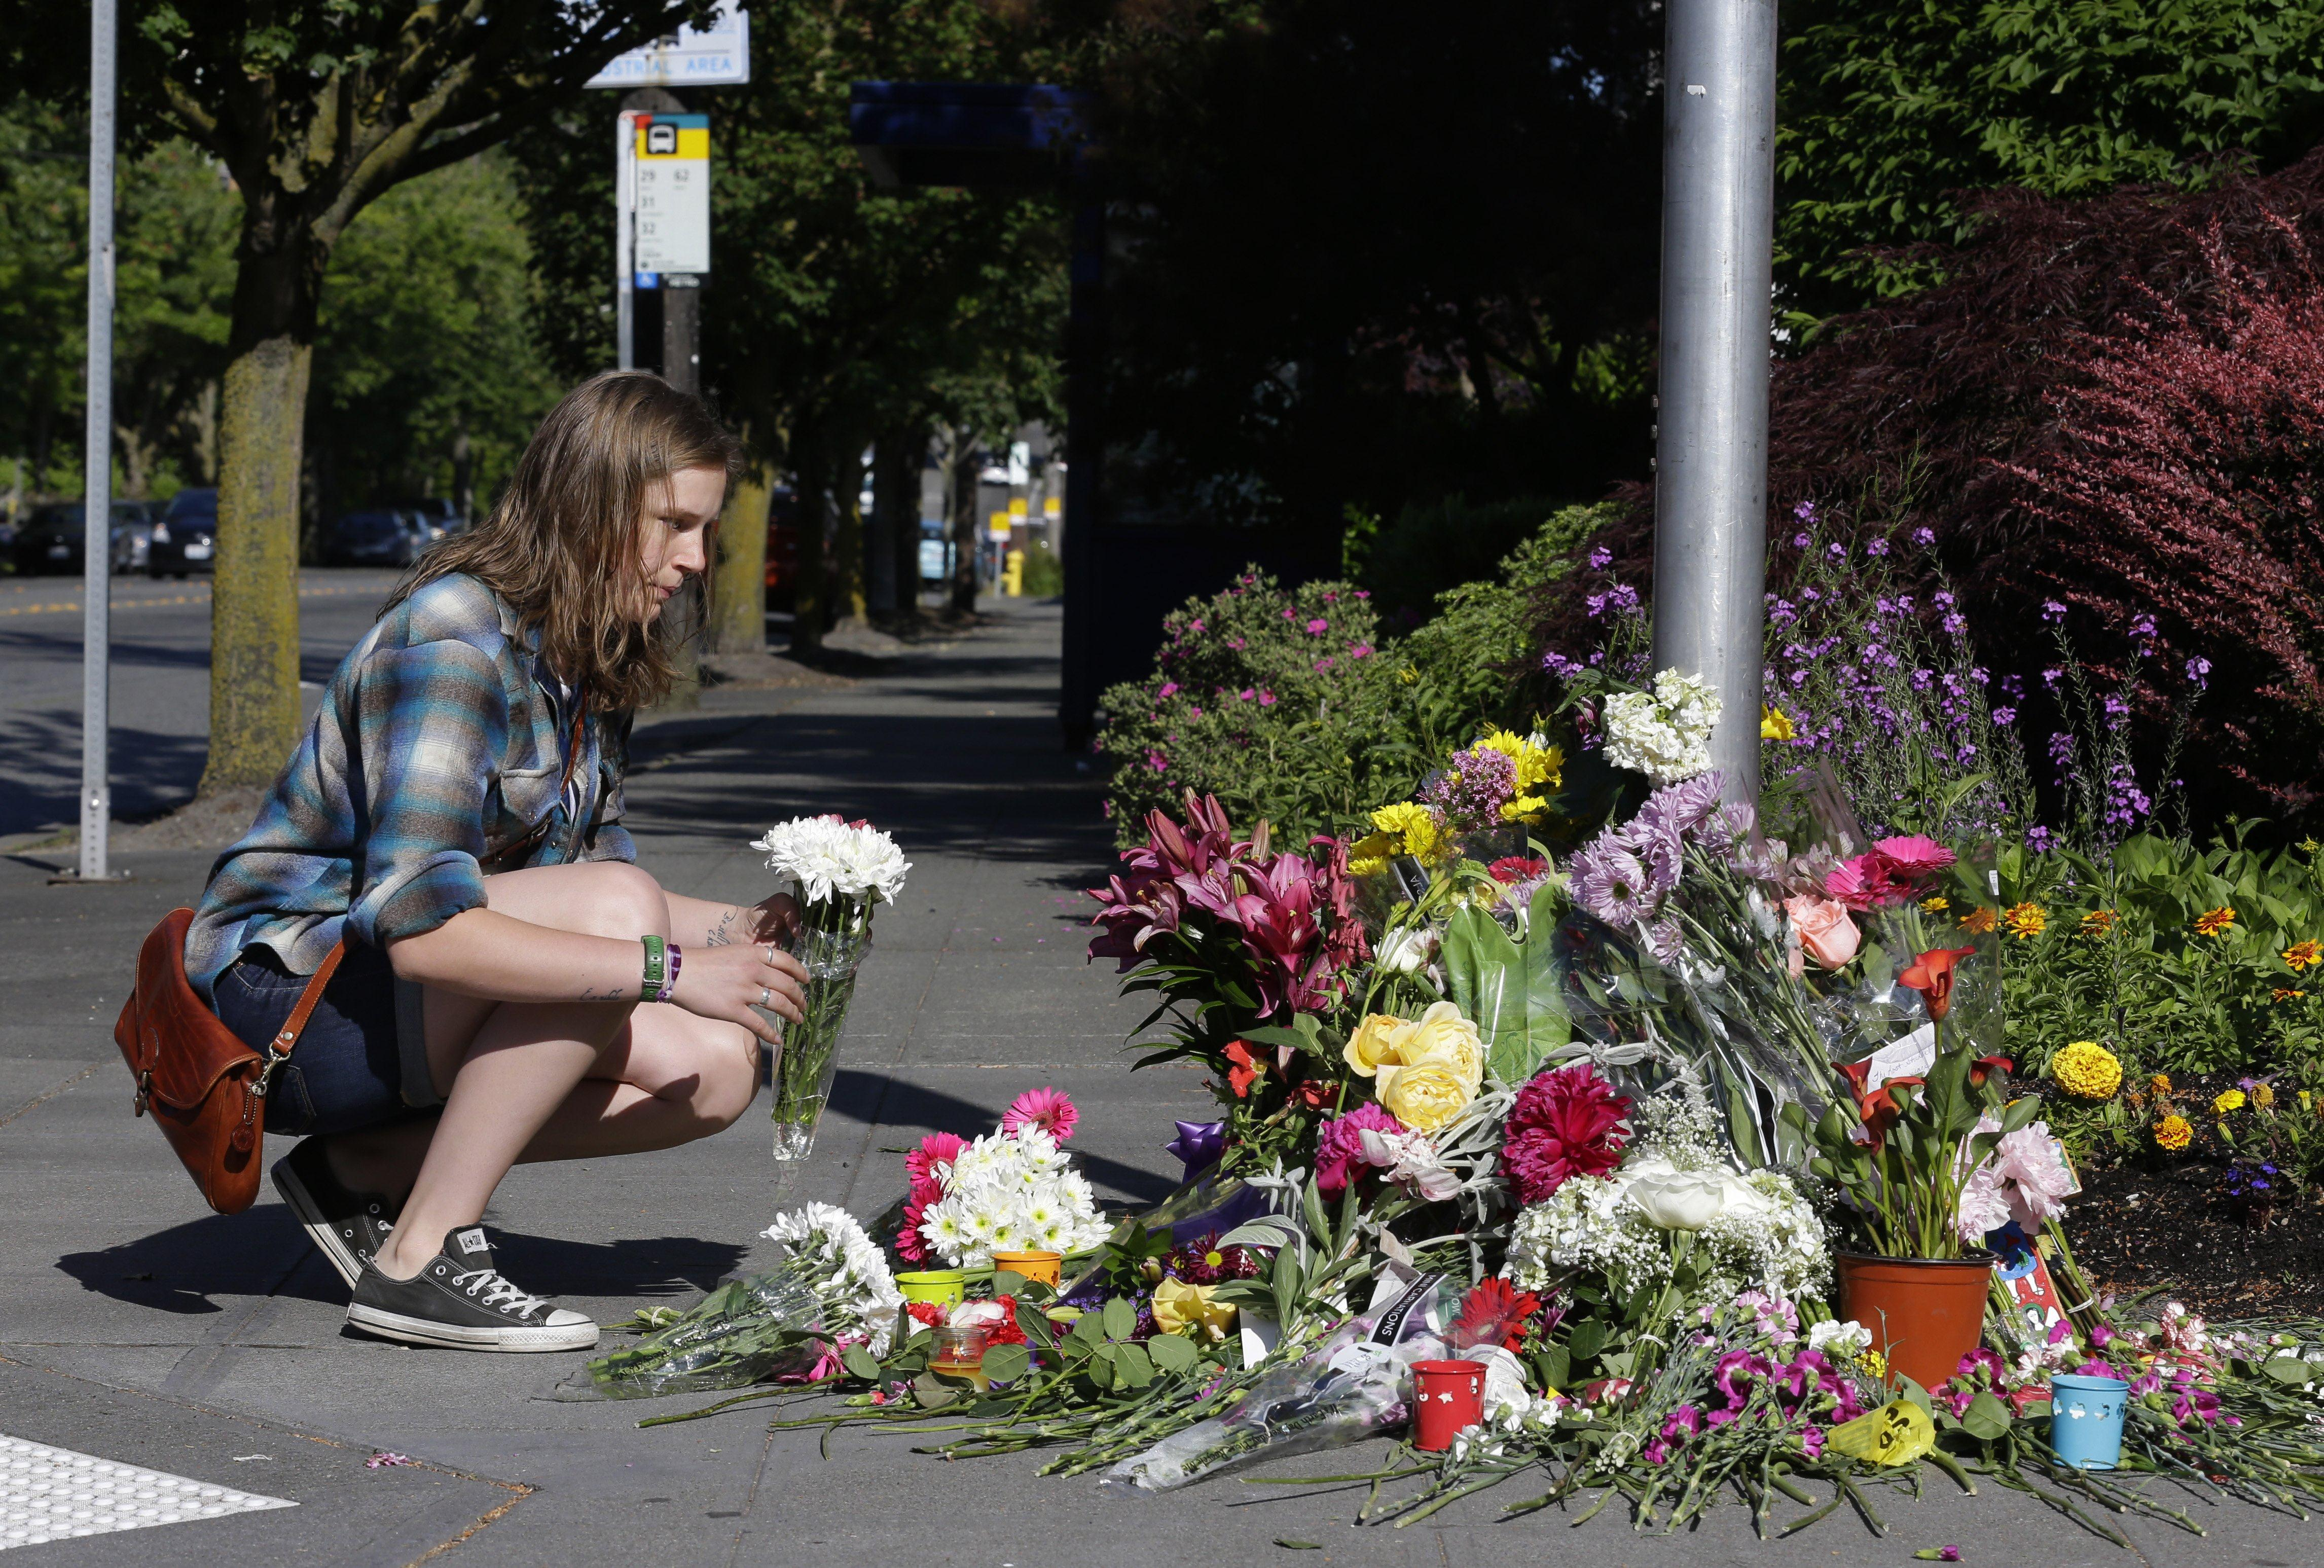 Suspect In Seattle Pacific University Rampage Researched